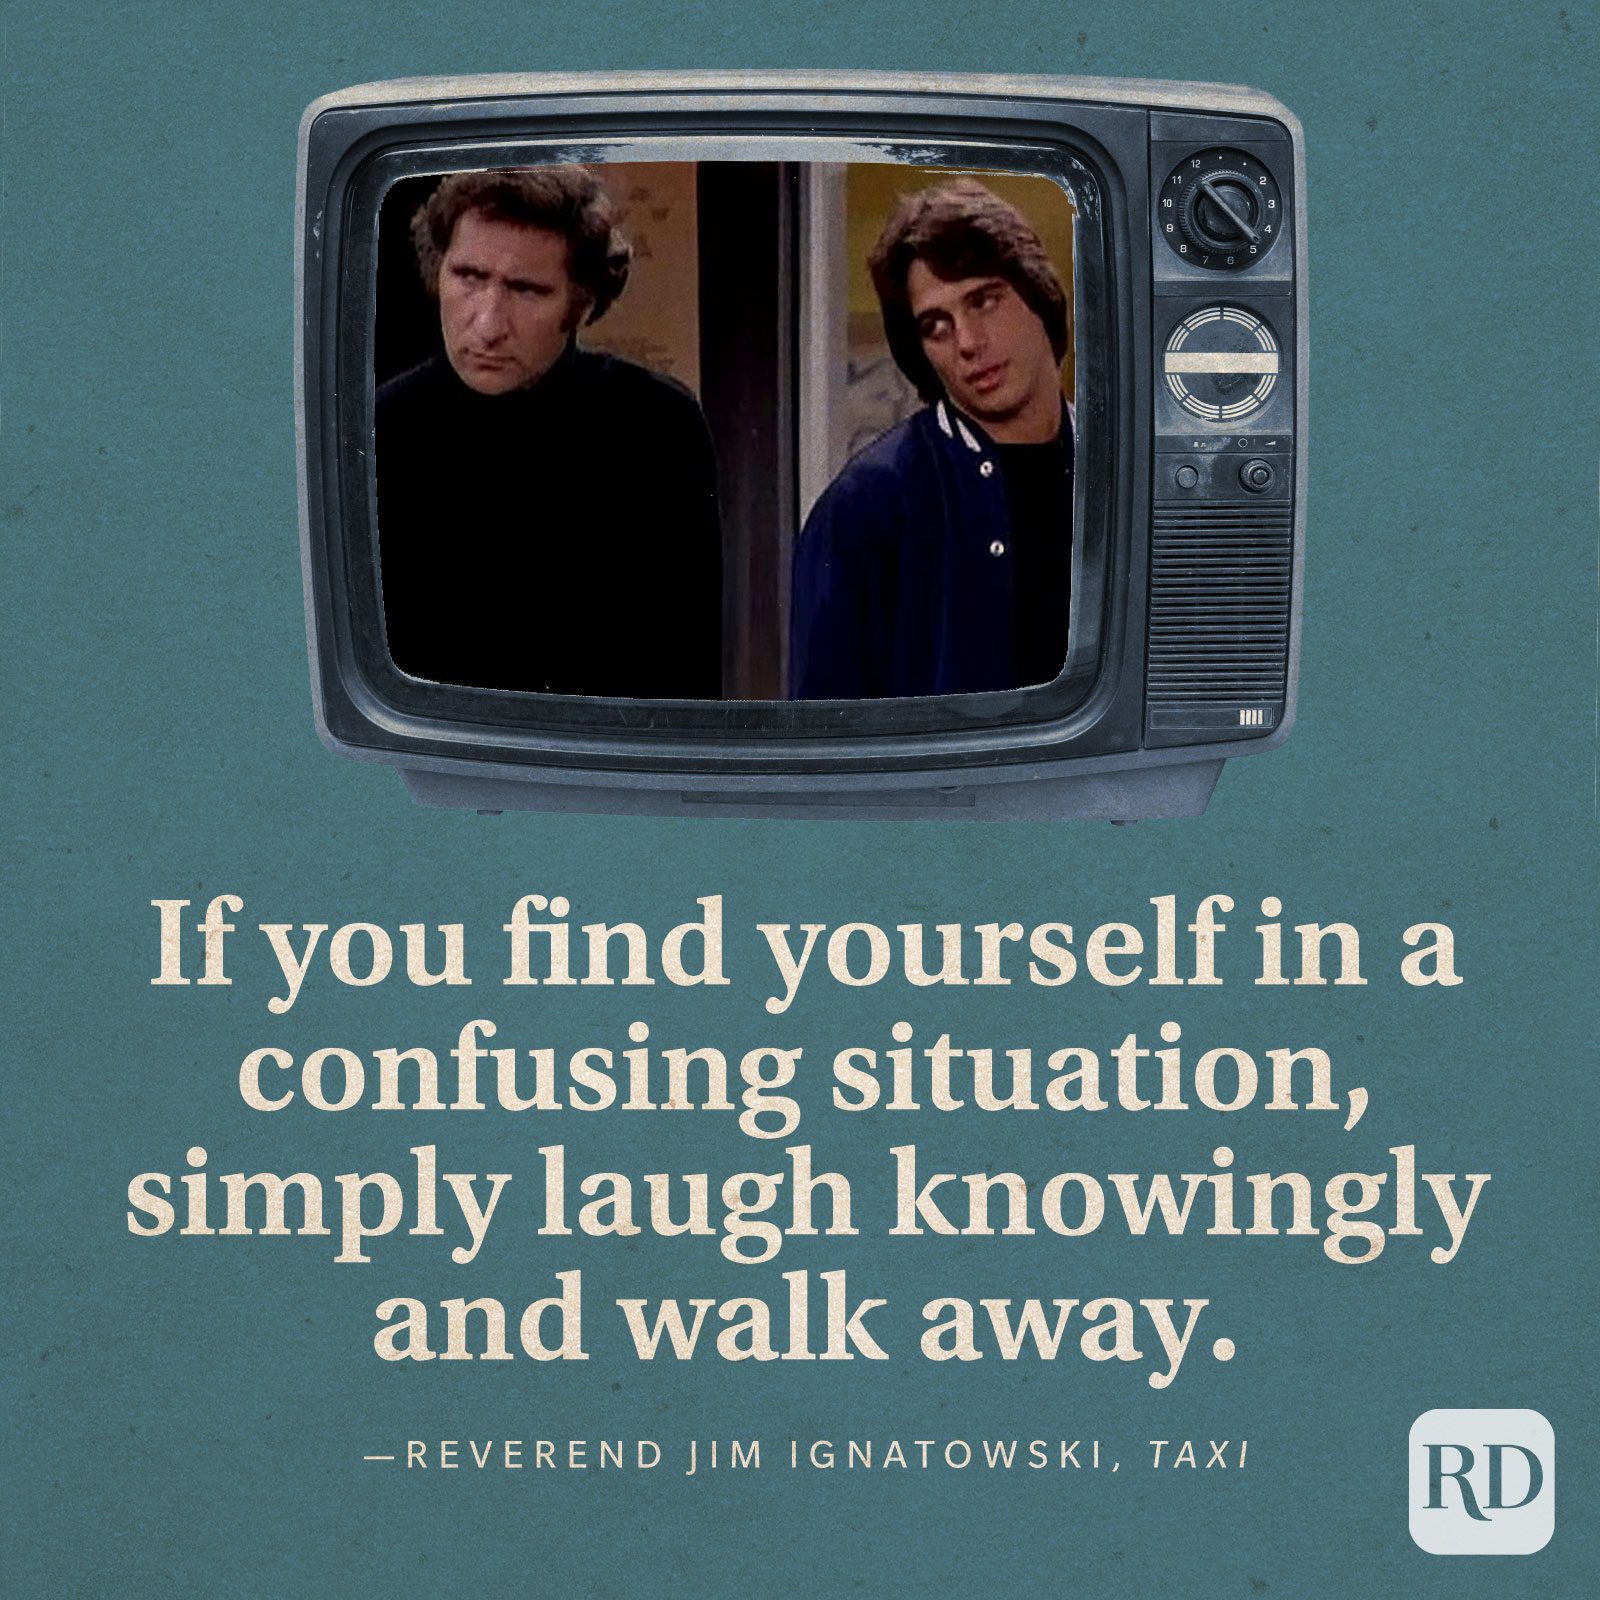 """""""If you find yourself in a confusing situation, simply laugh knowingly and walk away."""" —Reverend Jim Ignatowski in Taxi."""